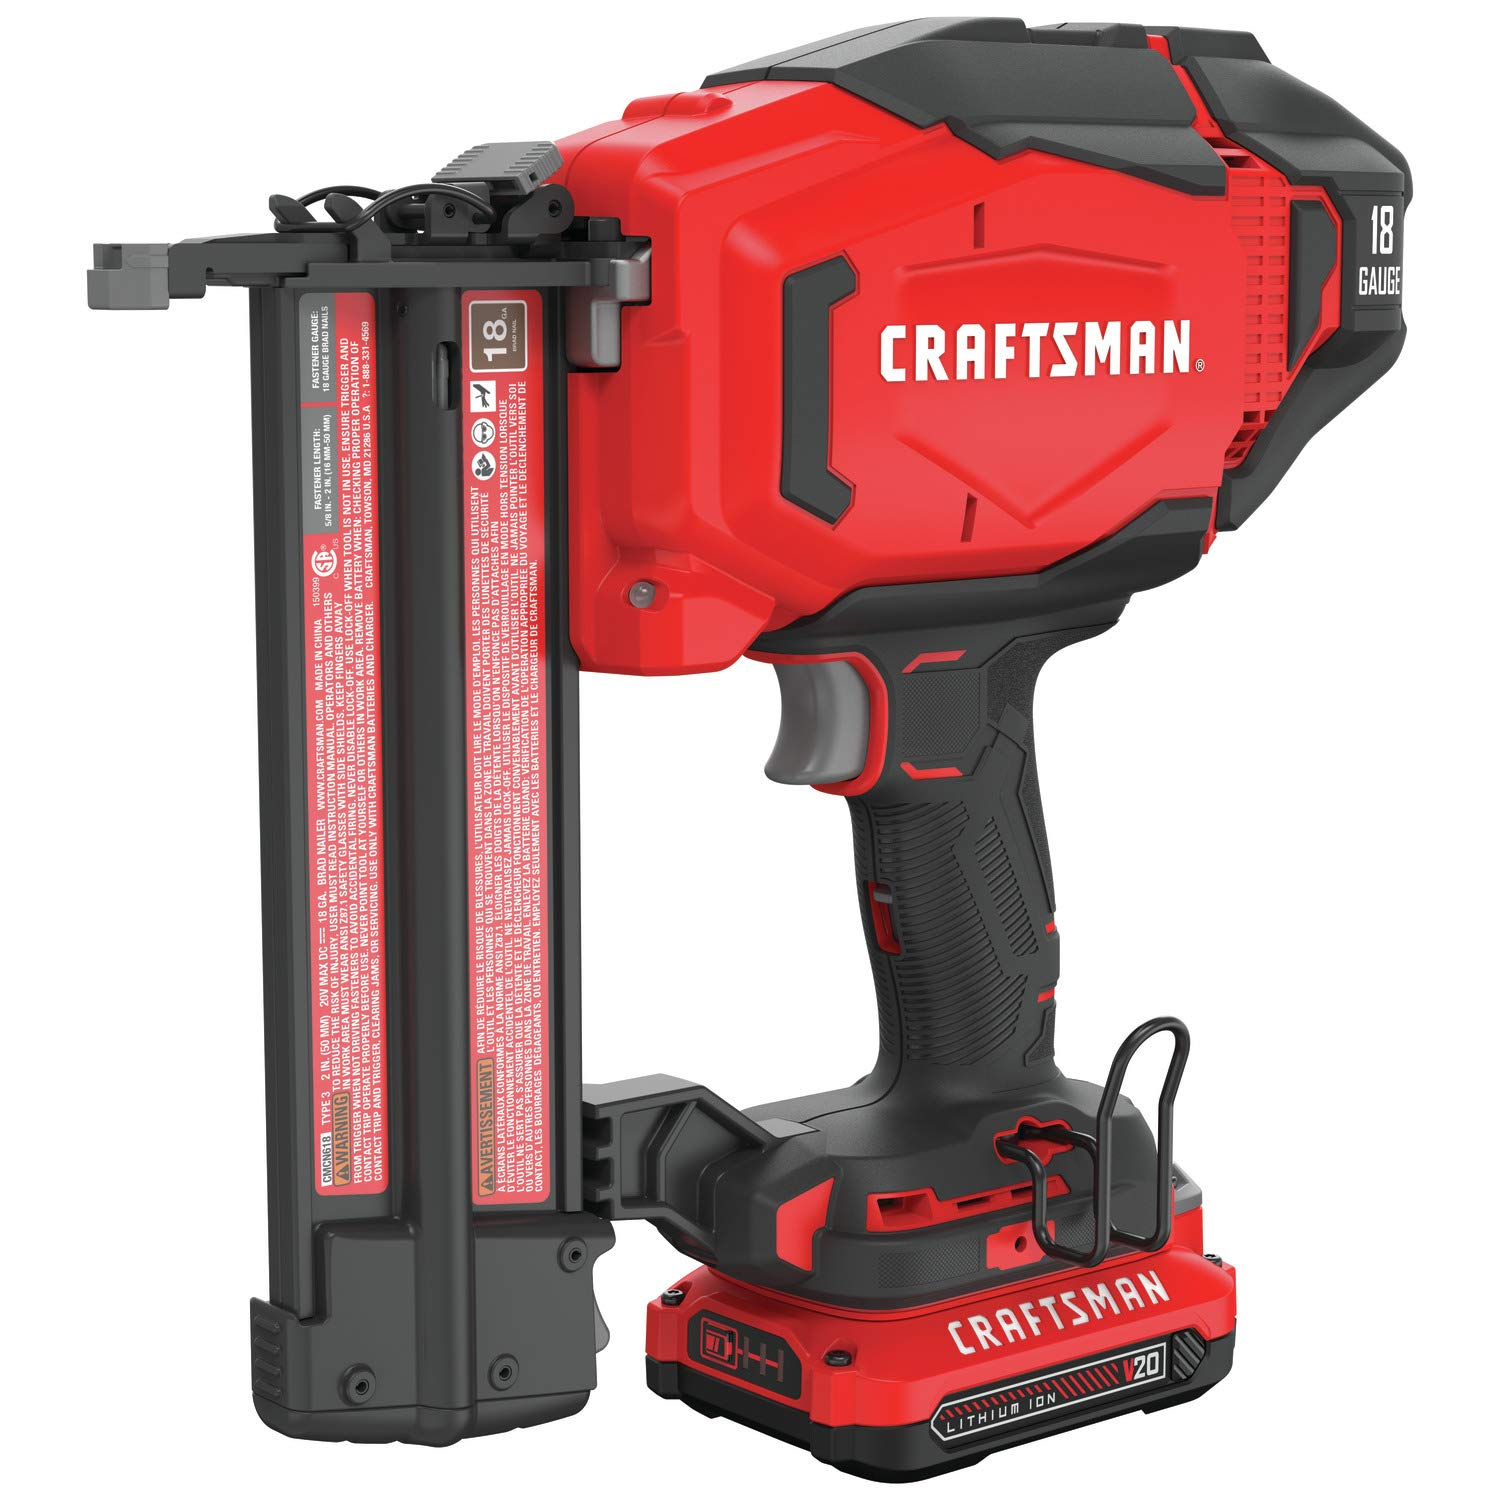 CRAFTSMAN V20 Cordless Brad Nailer Kit, 18GA CMCN618C1